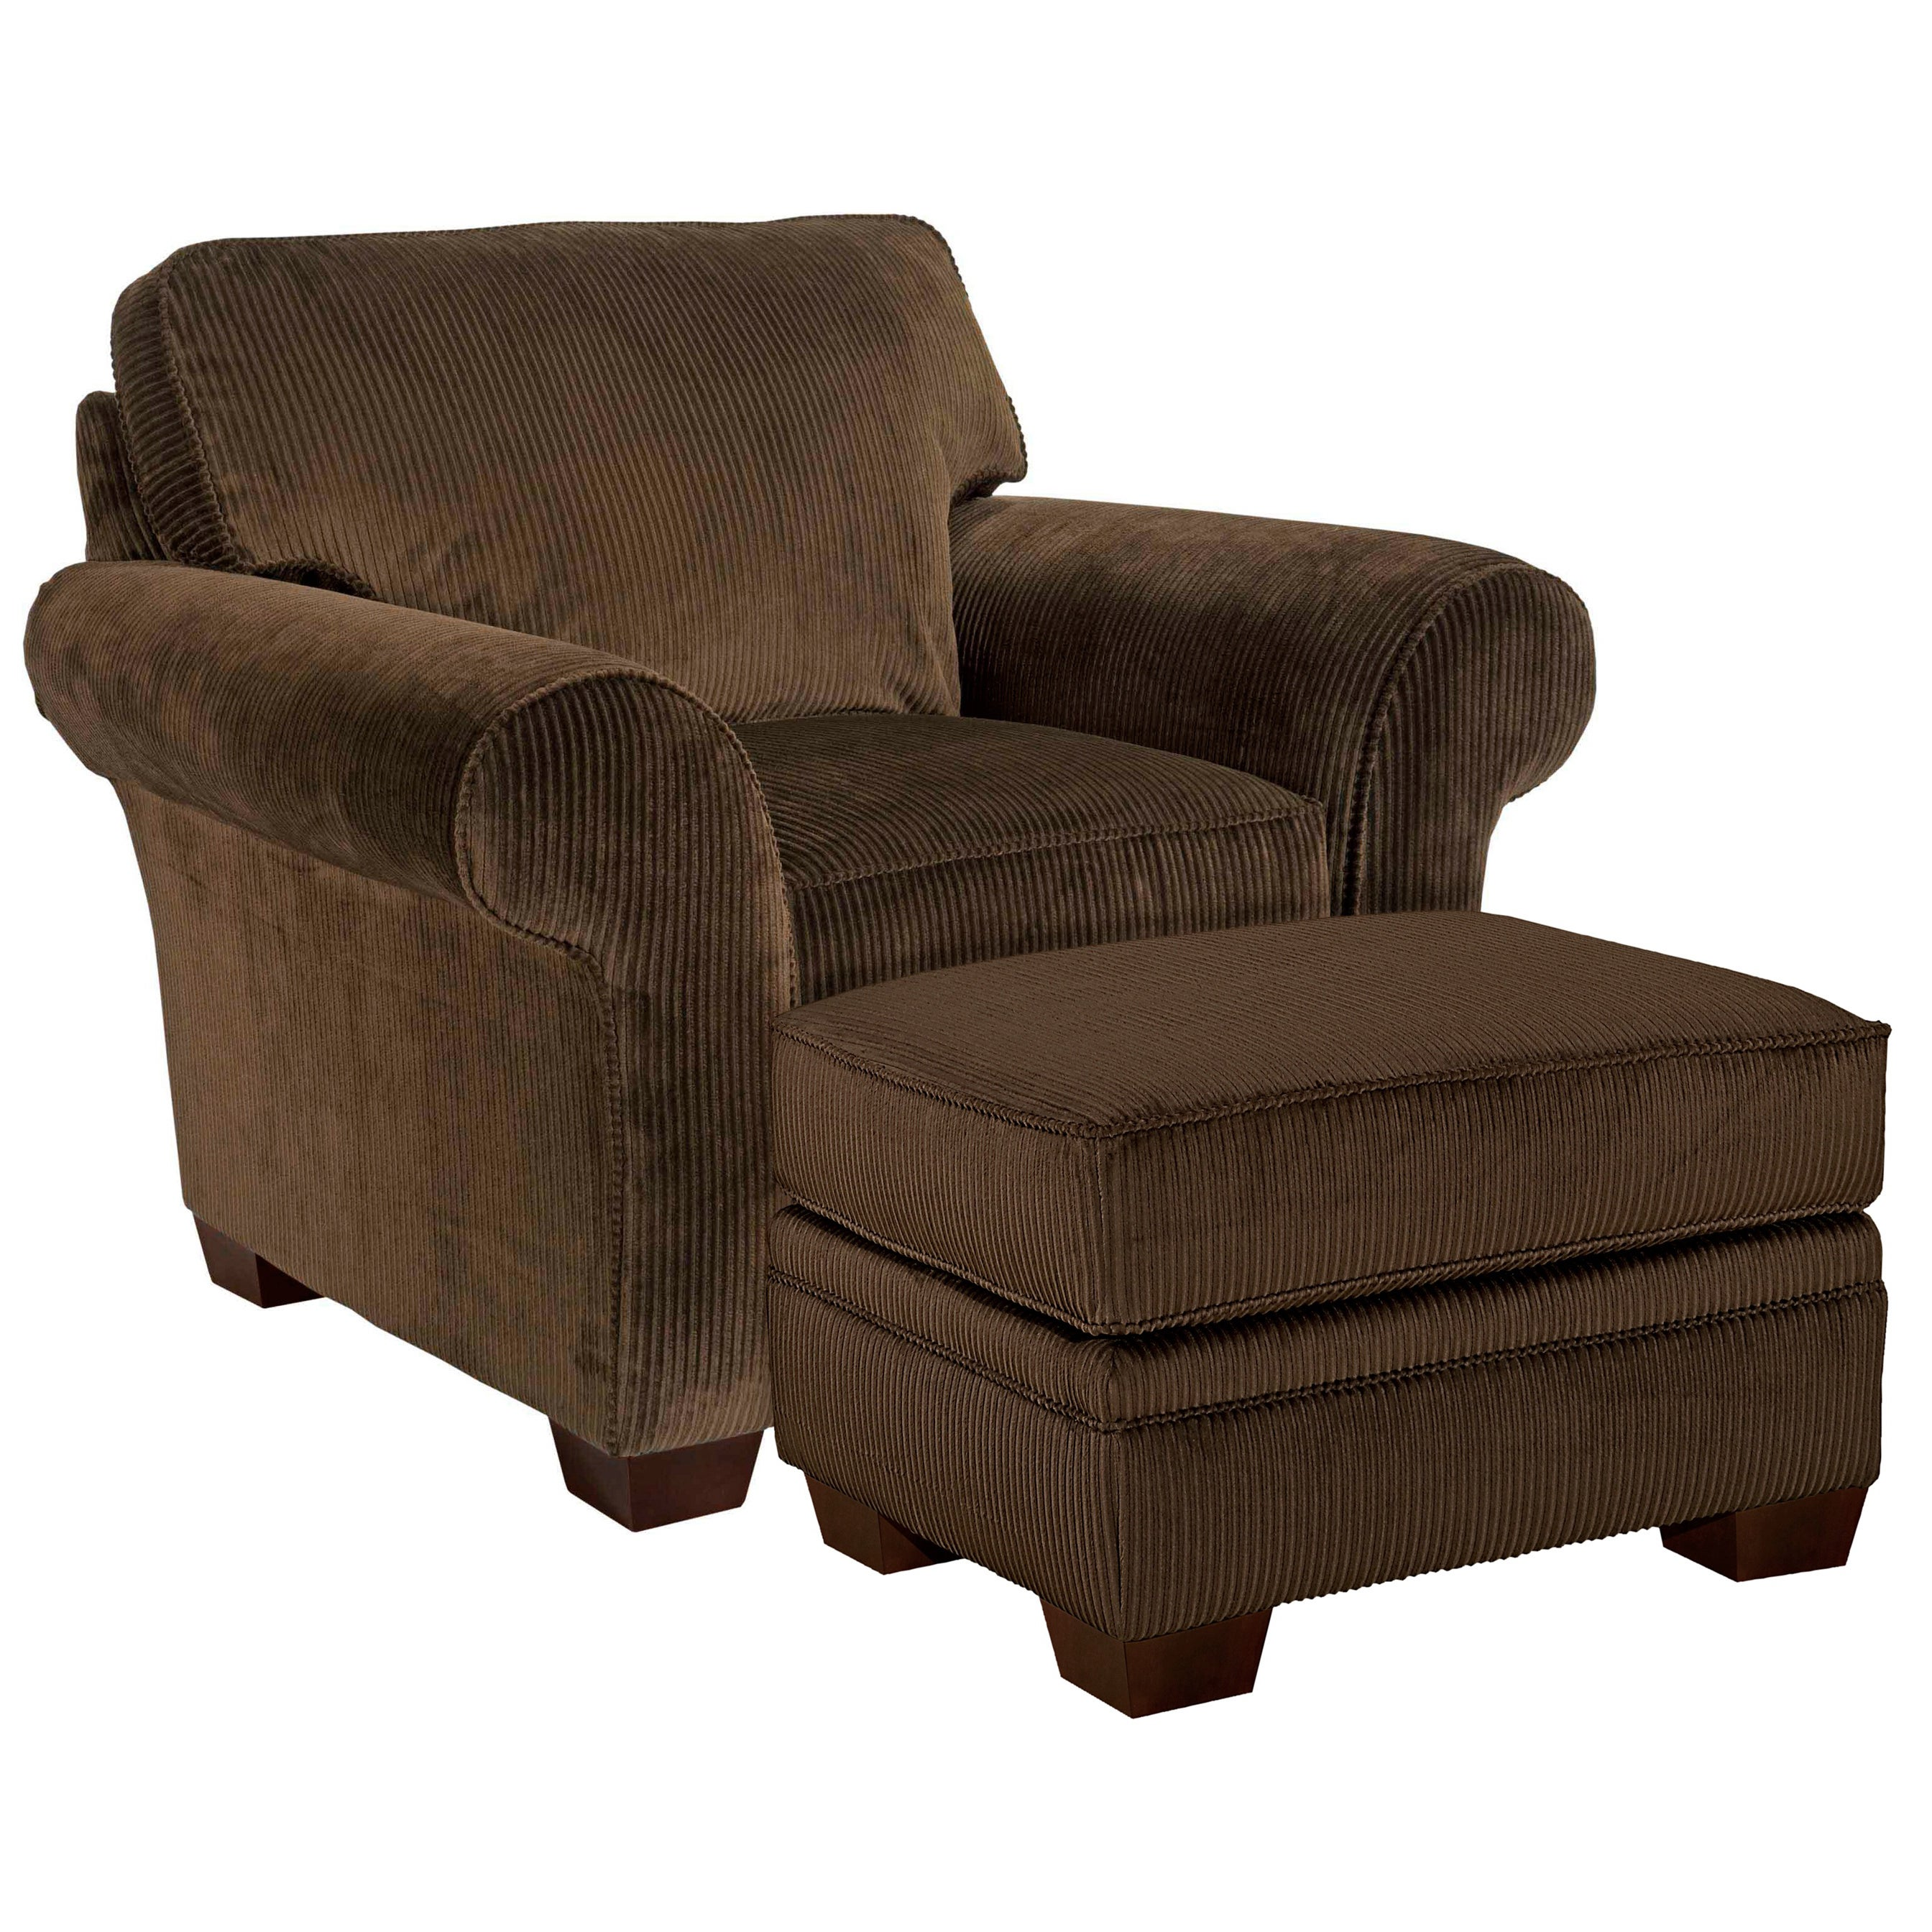 Broyhill Zoey Dark Chocolate Corduroy Chair/ Ottoman Set ...